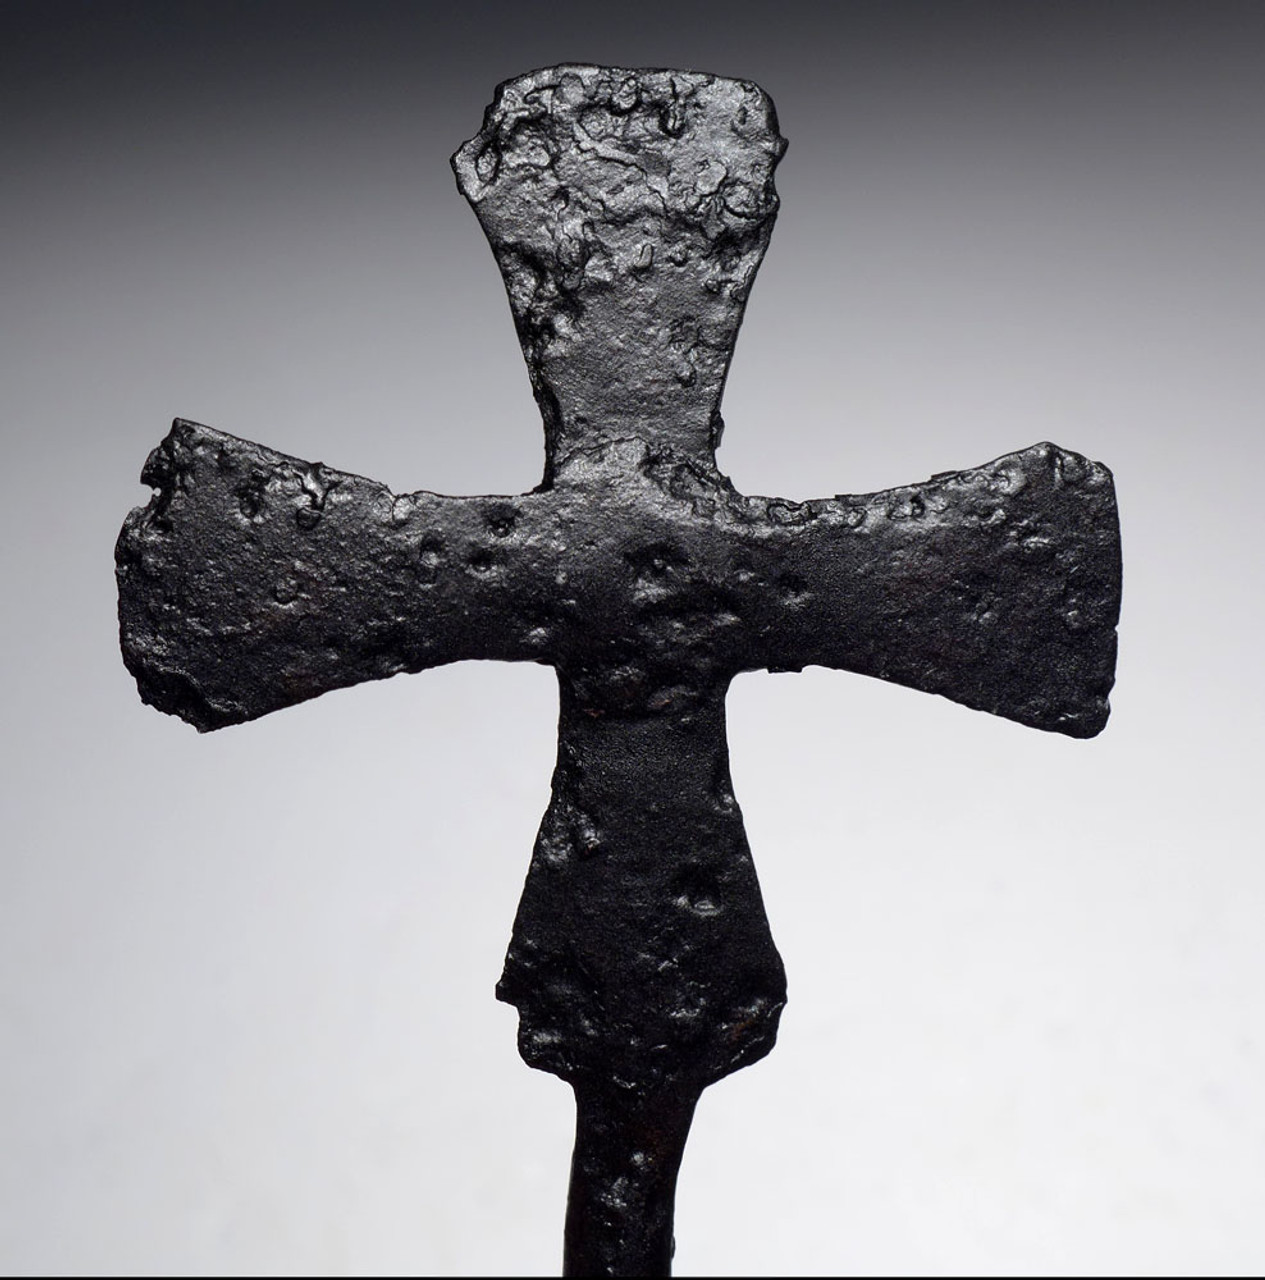 EXTREMELY RARE ANCIENT CHRISTIAN ROMAN PROCESSIONAL CROSS USED BY THE BYZANTINE MILITARY IN COMBAT  *R269